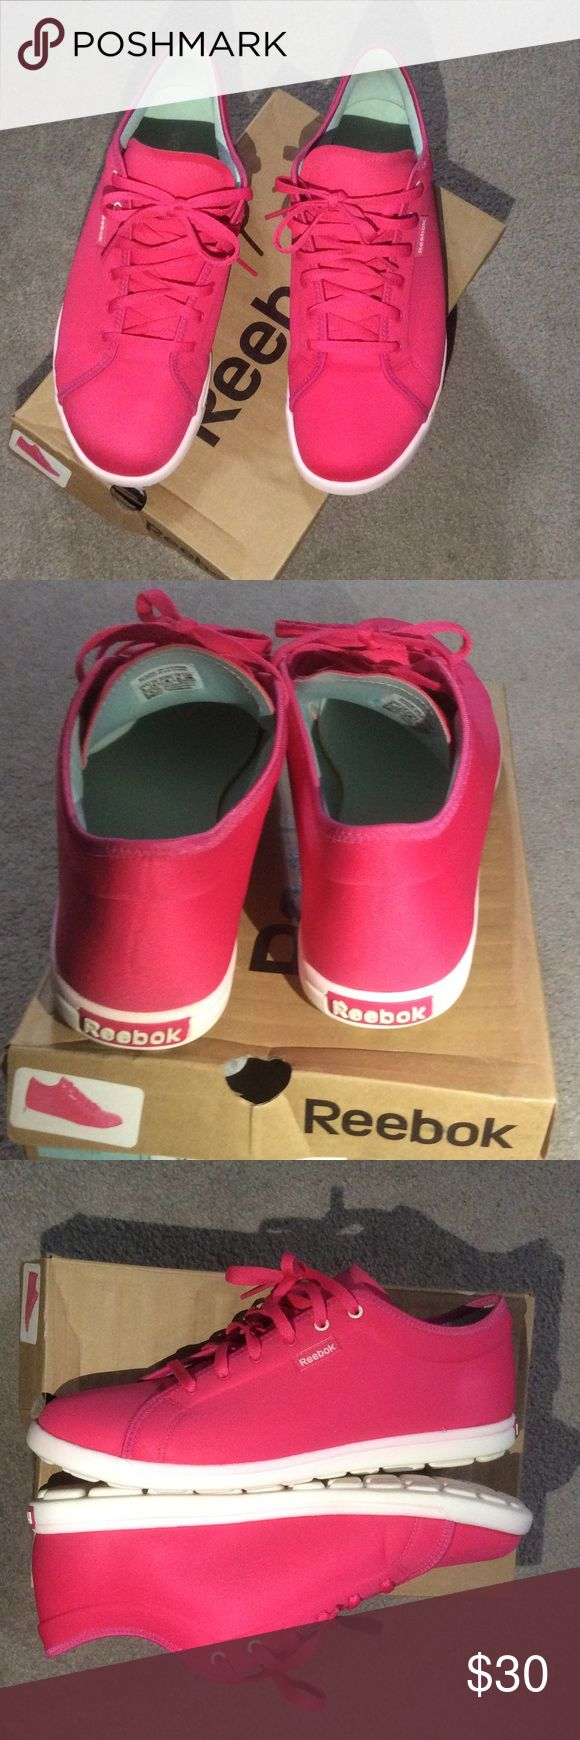 Reebok Skyscape Runaround  Pink Sneakers Reebok Skyscape pink sneakers in good good condition. Foam sneakers very very comfortable cushion walk. Make me an offer!!! Reebok Shoes Sneakers